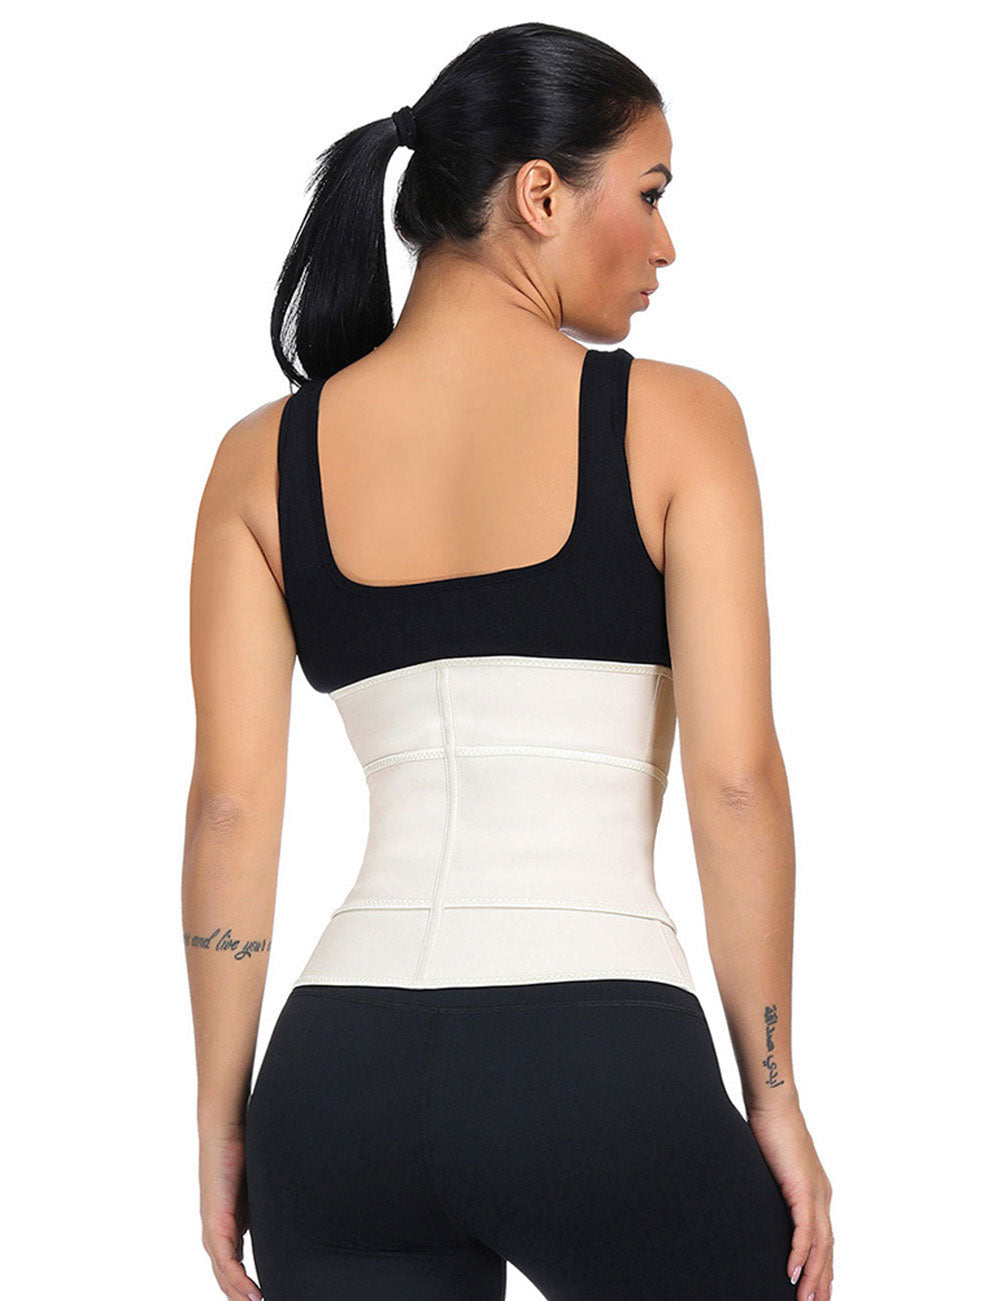 Curvyfeel 7 Steel Bones Sticker Zip Latex Waist Slimmer Plus Size